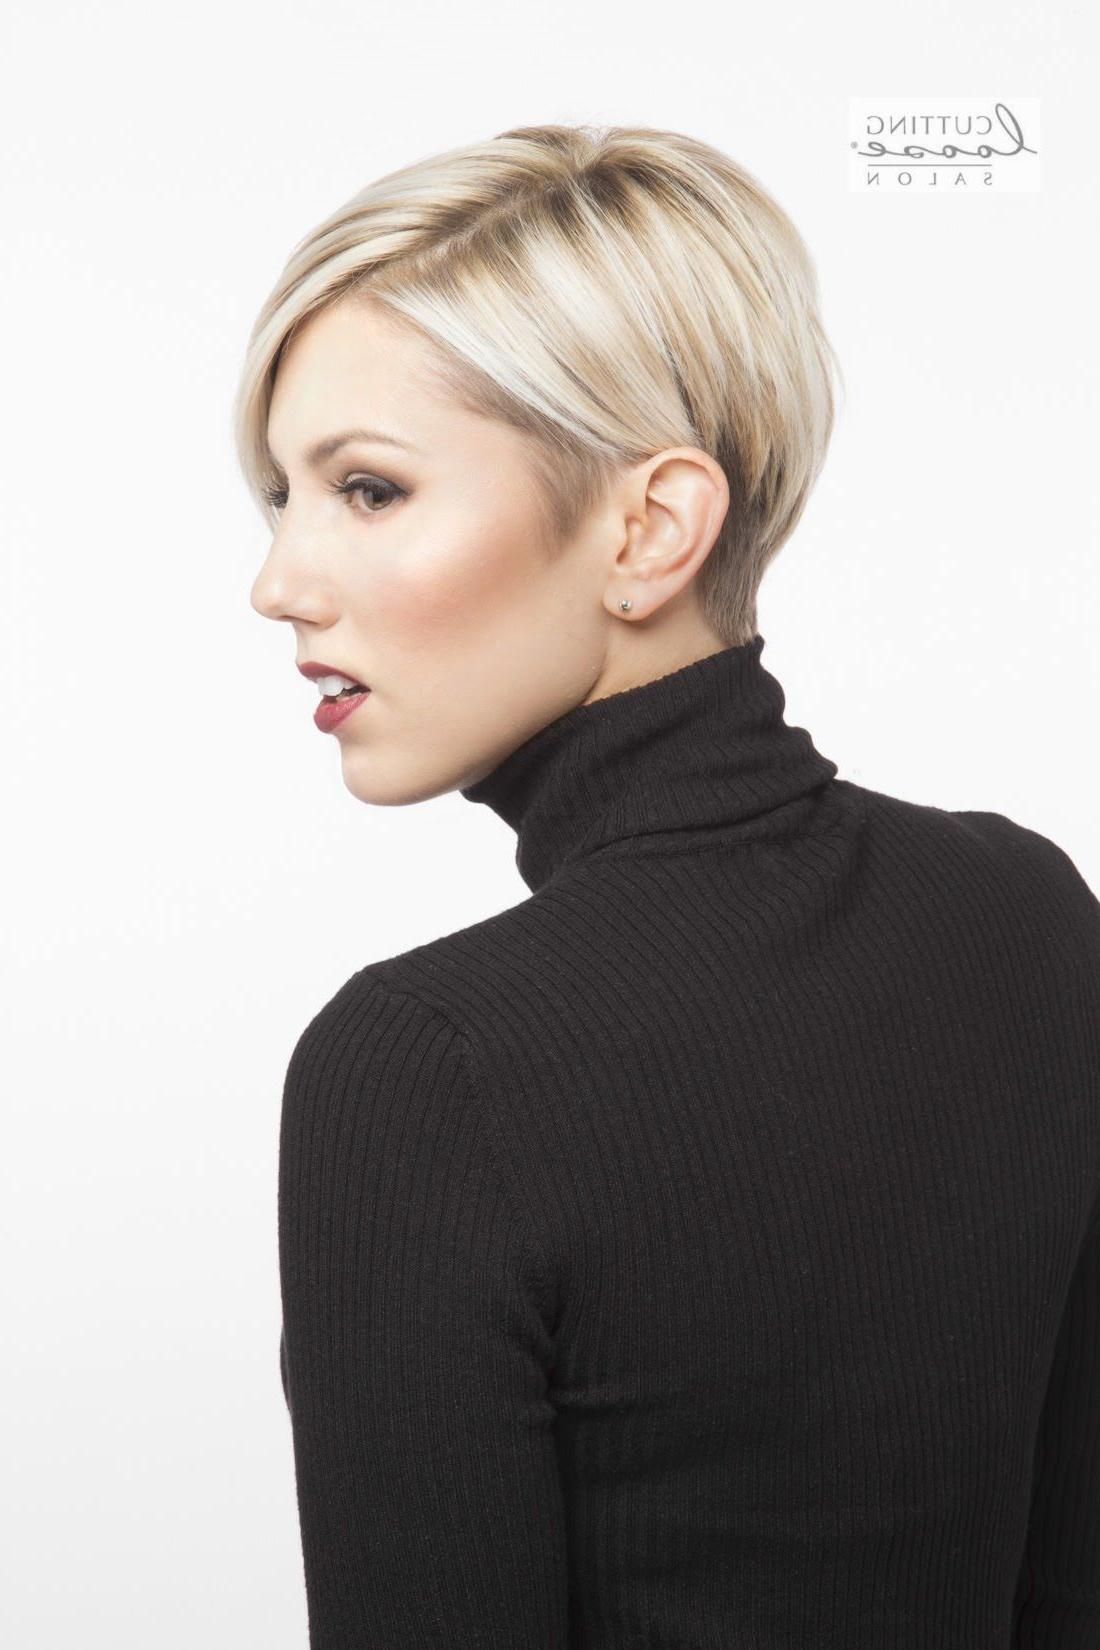 All New: 36 Short Haircuts For Women   Short Pixie Haircuts In 2018 Pertaining To Feminine Short Hairstyles For Women (View 1 of 25)